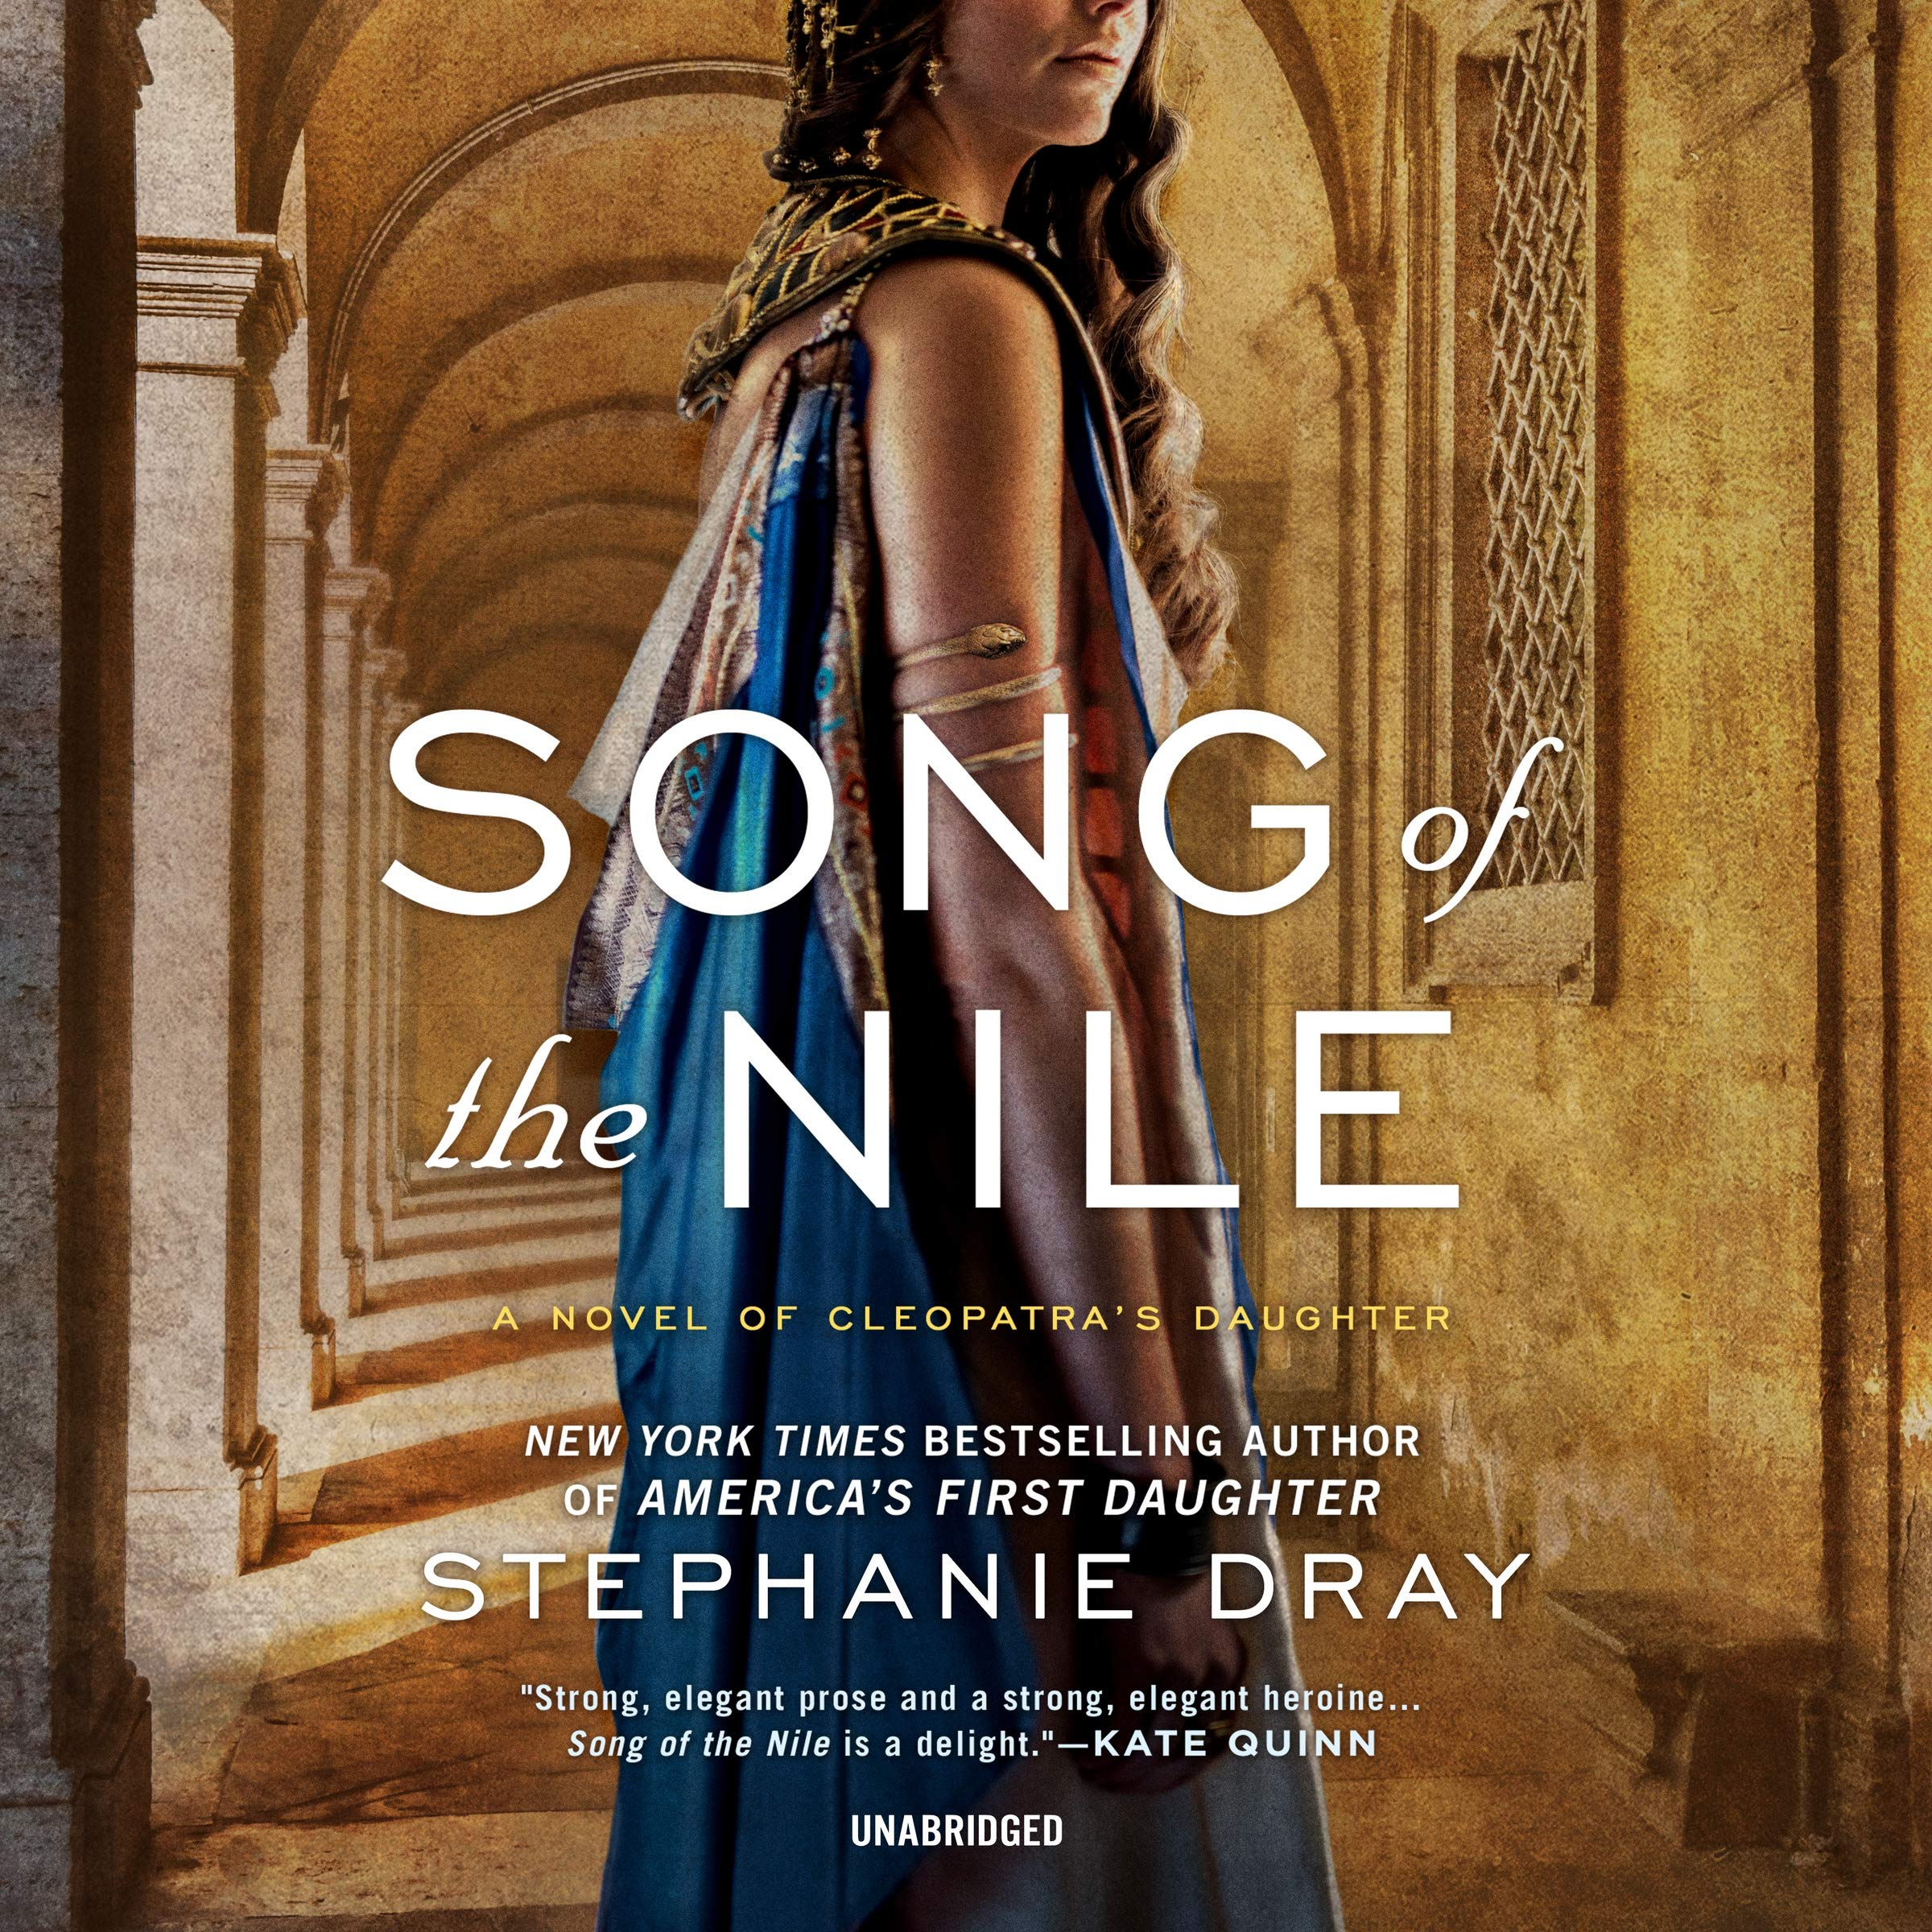 Song of the Nile: The Cleopatra's Daughter Trilogy, book 2